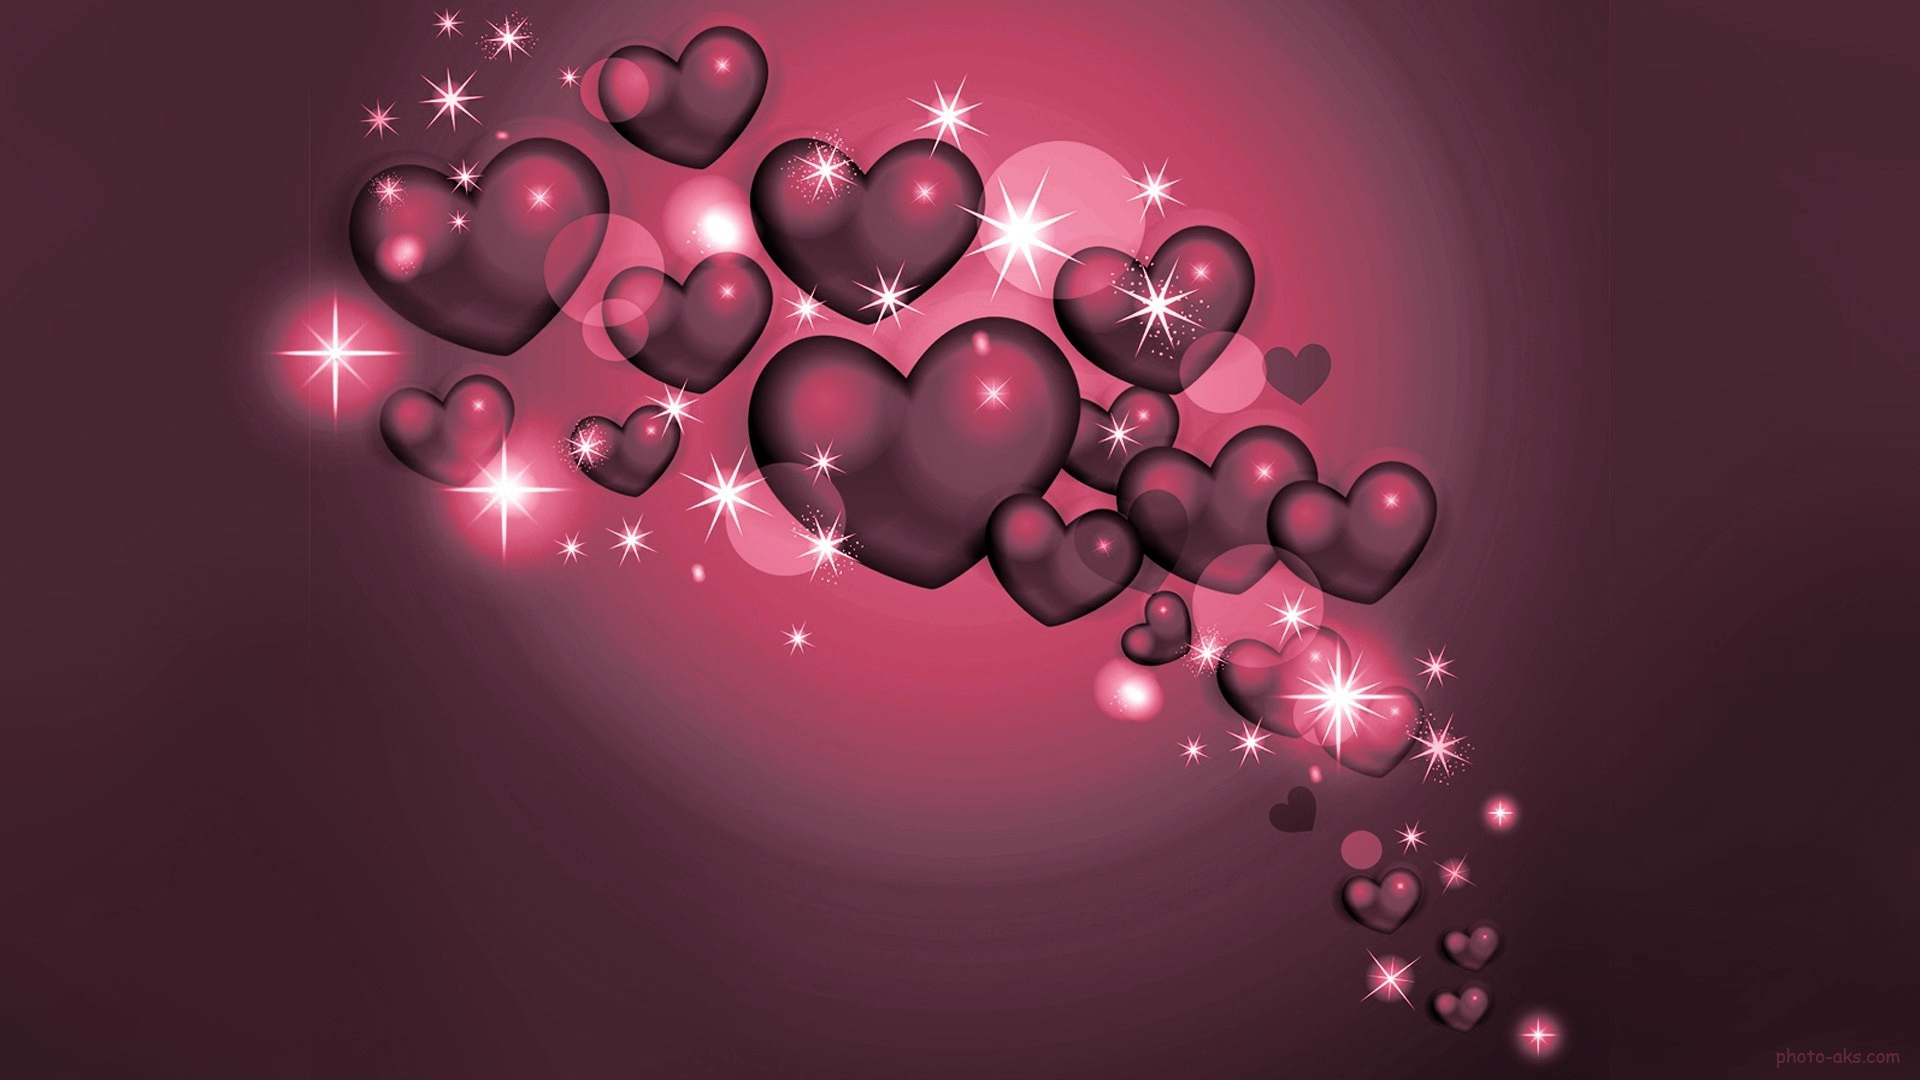 Love Desktop Wallpaper 3d : Pin Pin 3d Love Heart Free Wallpapers On Pinterest on Pinterest